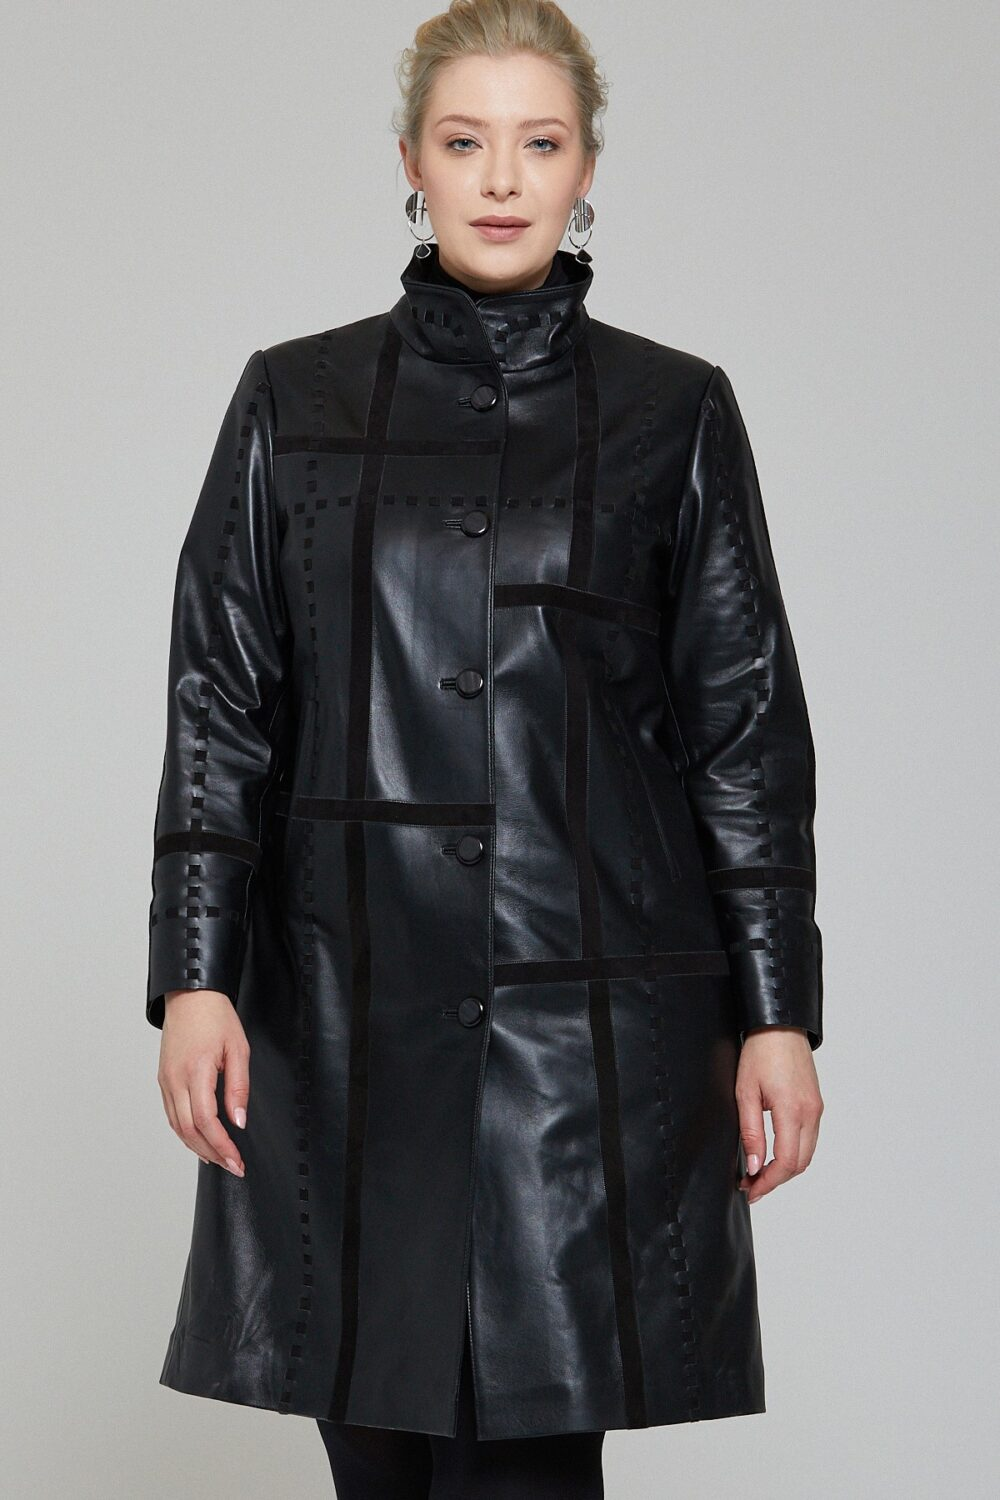 Shearling Lined Leather Jacket Womens